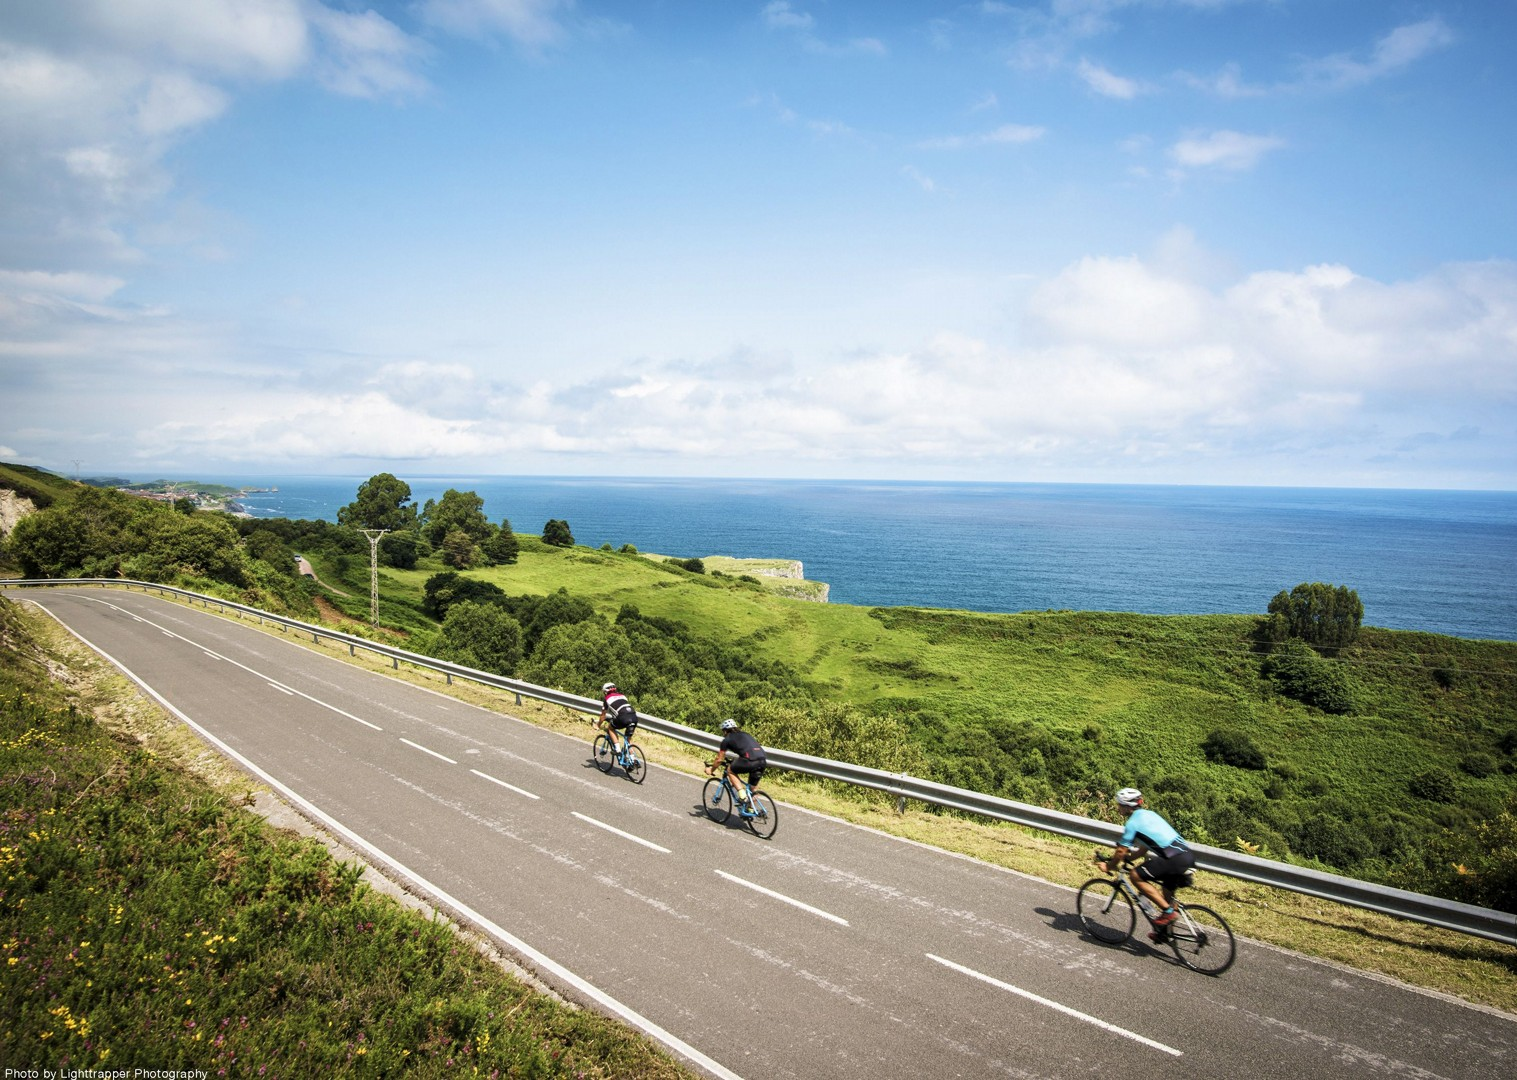 atlantic-coastline-road-cycling-views-spectacular.jpg - Northern Spain - Road to Santiago - Guided Road Cycling Holiday - Road Cycling